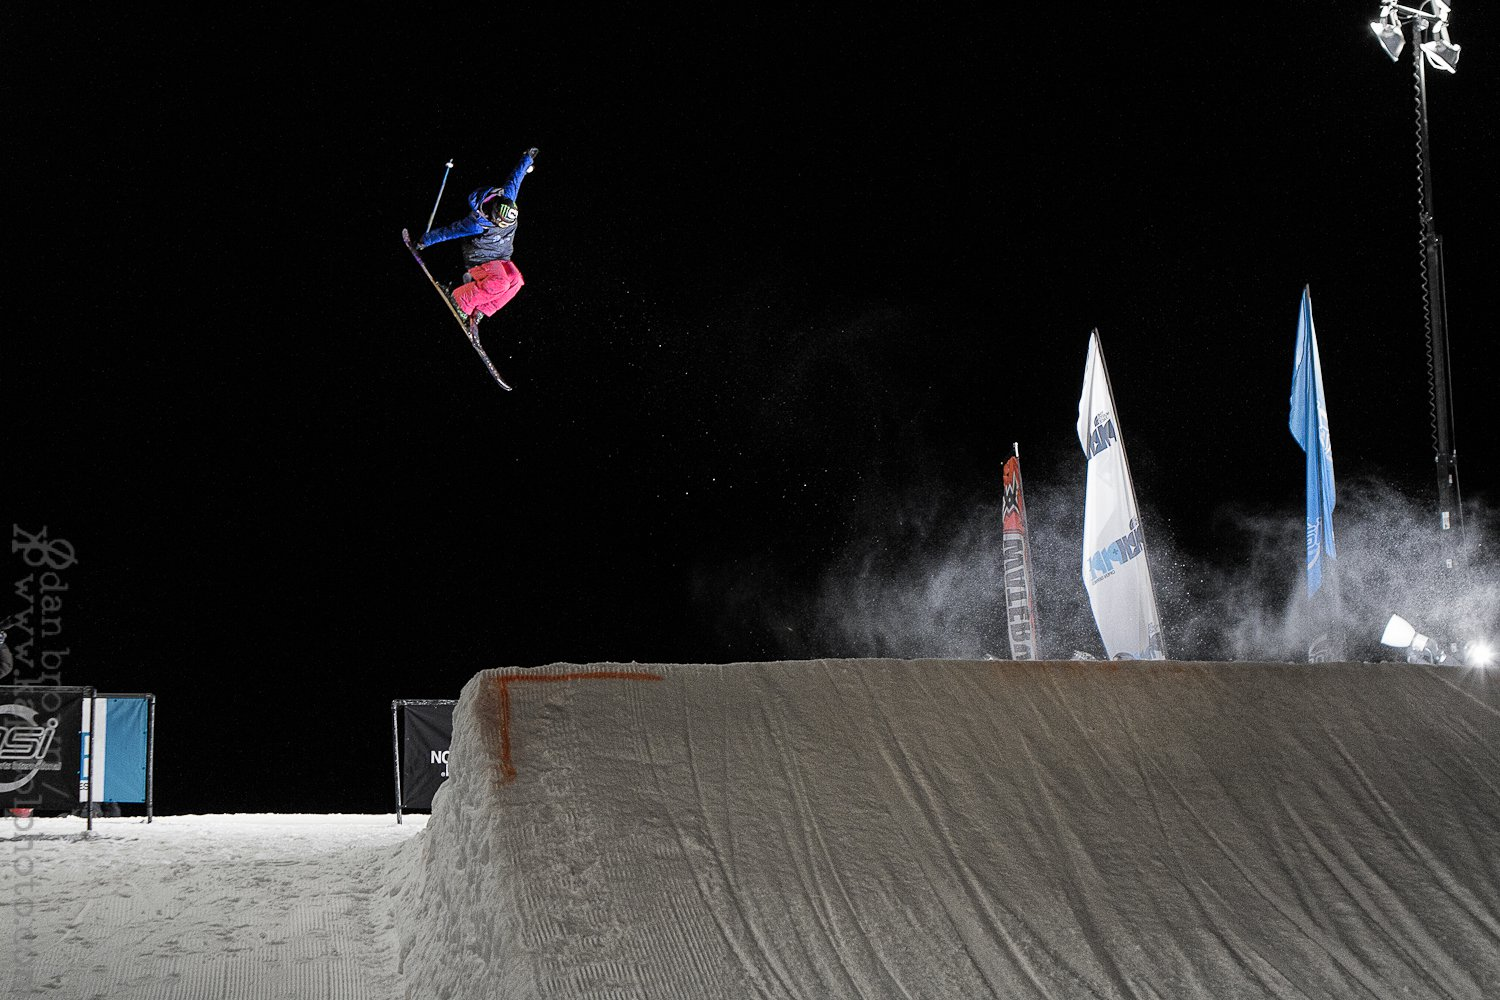 Devin Logan @ TNFPPO Big Air